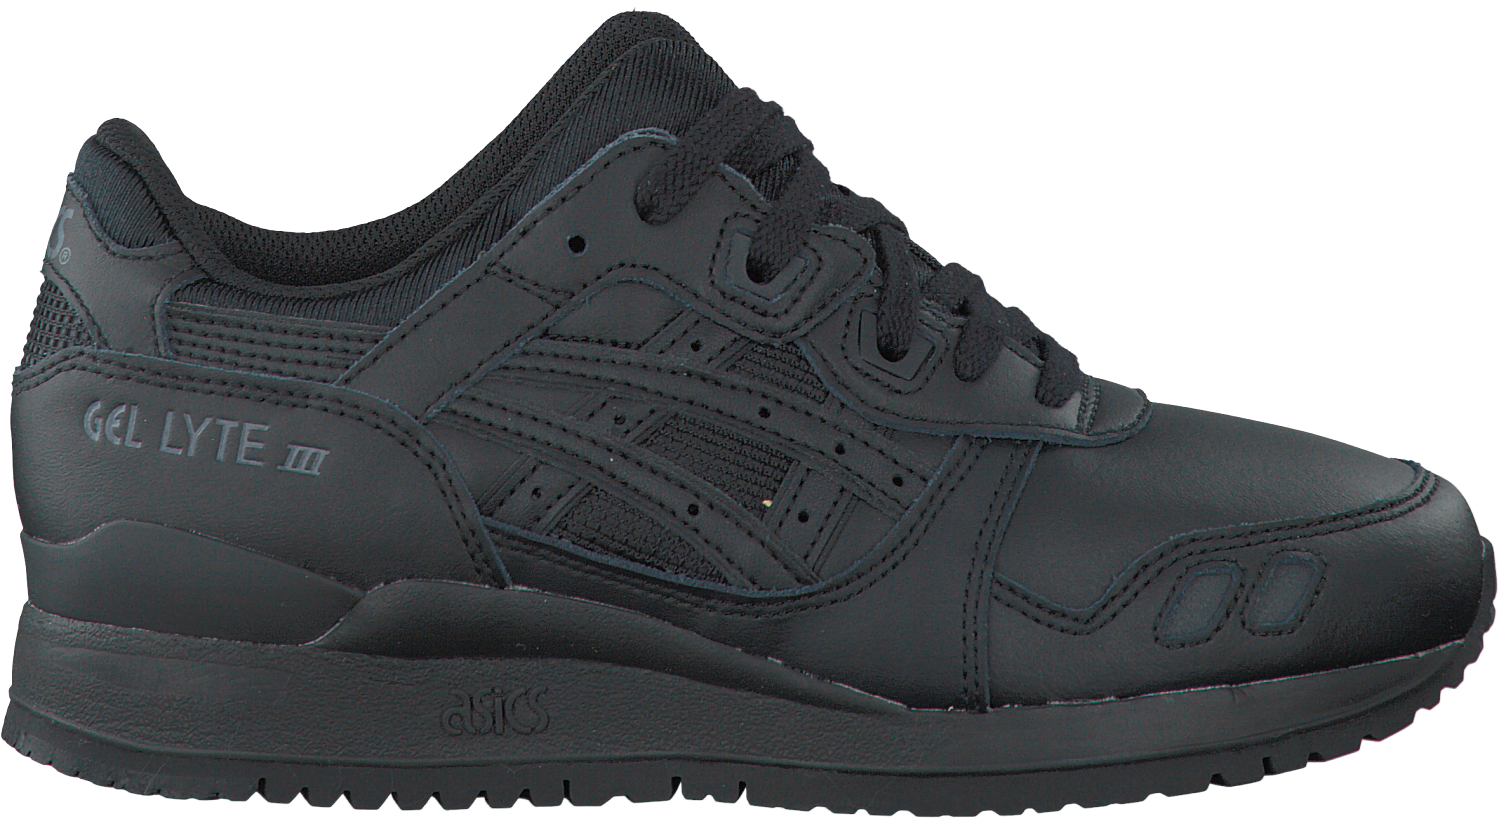 Black ASICS TIGER Sneakers GEL LYTE III DAMES - Omoda.com